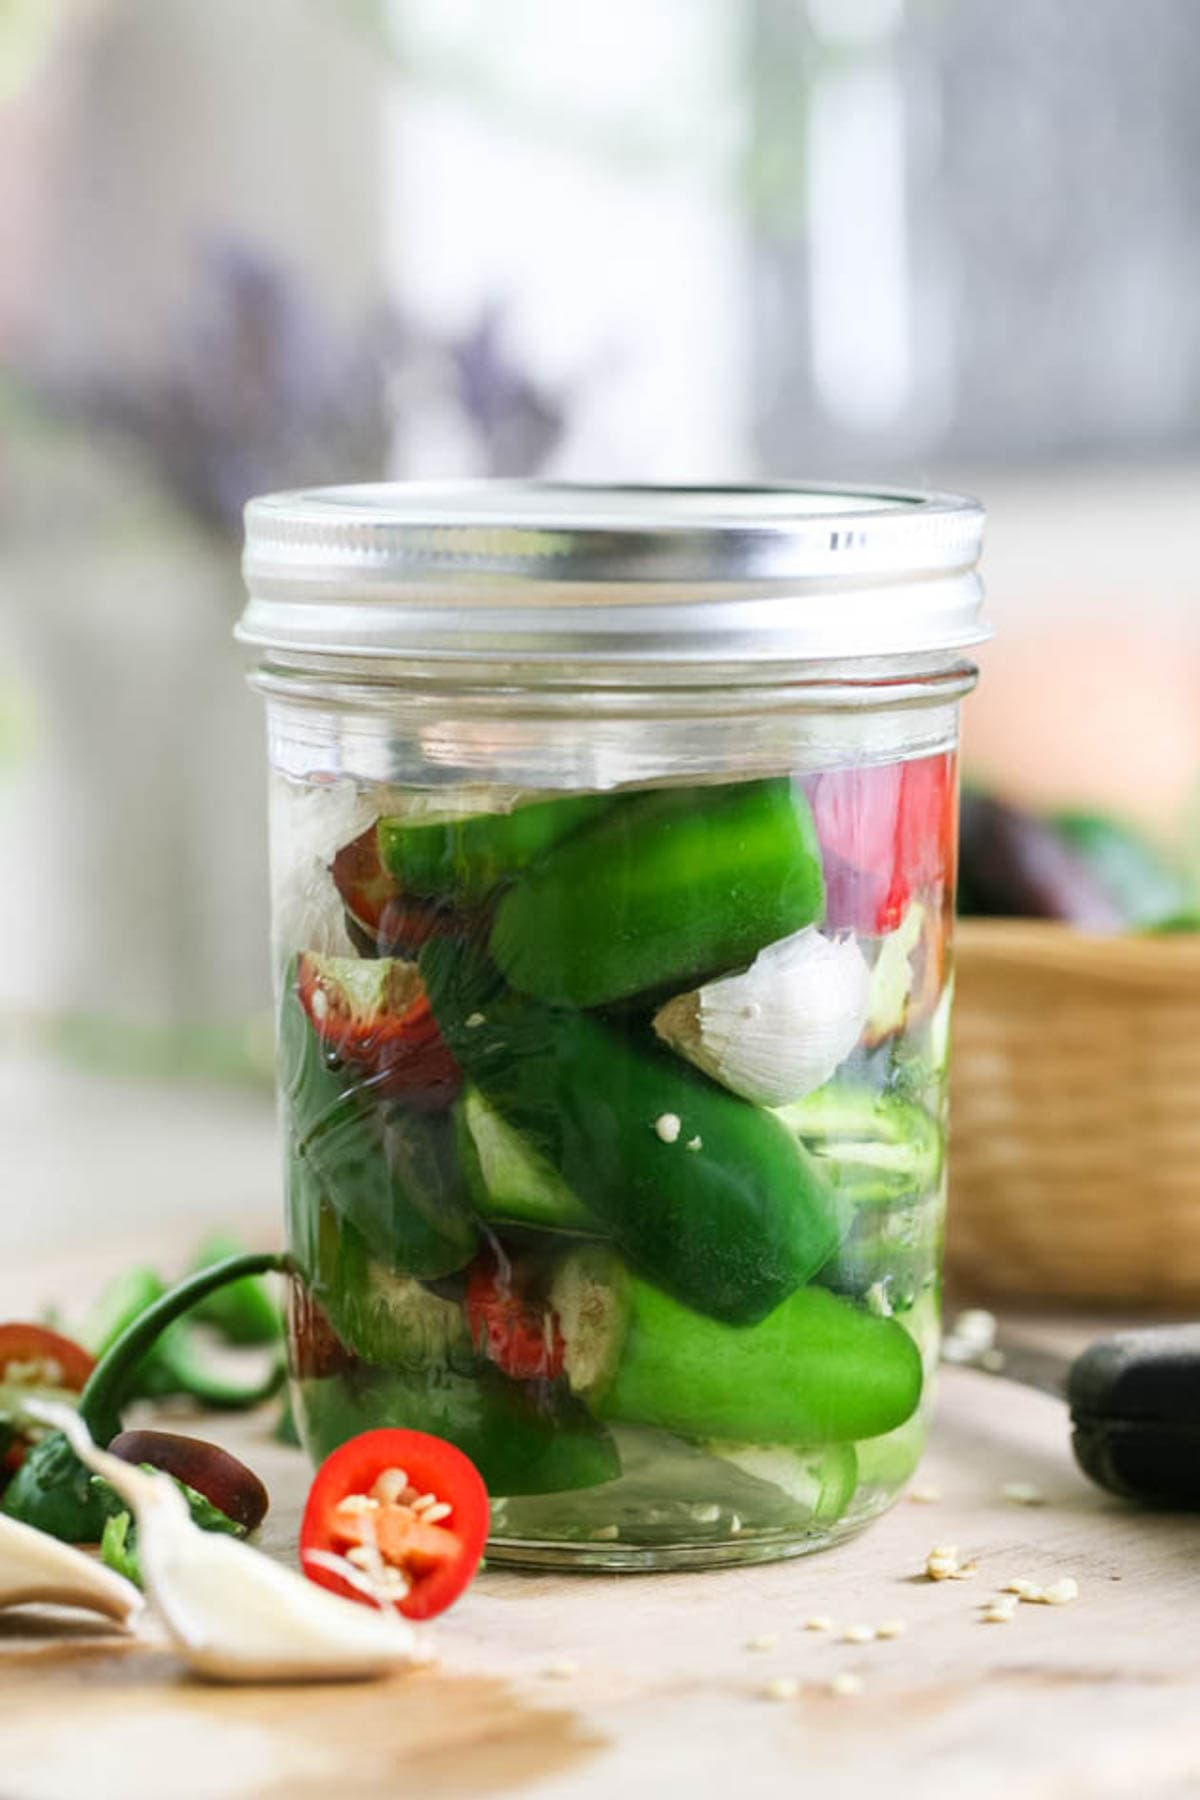 Lacto fermented jalapenos in a jar.